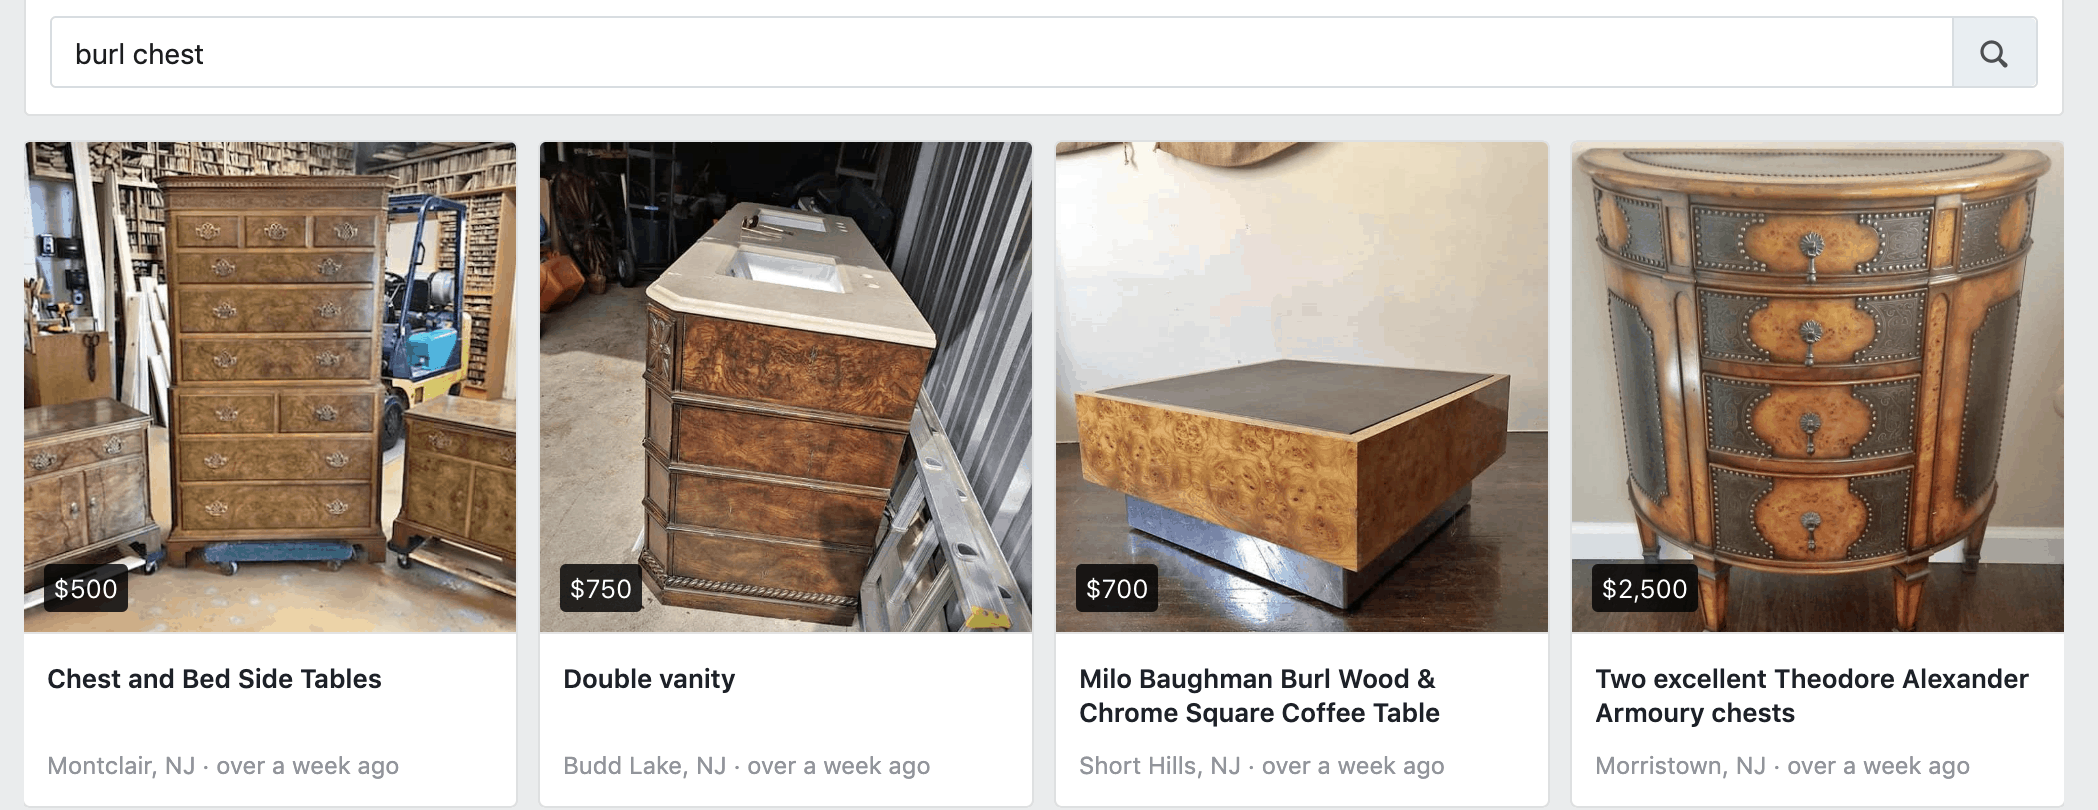 8 Tips For Sourcing Quality Furniture on Facebook Marketplace •